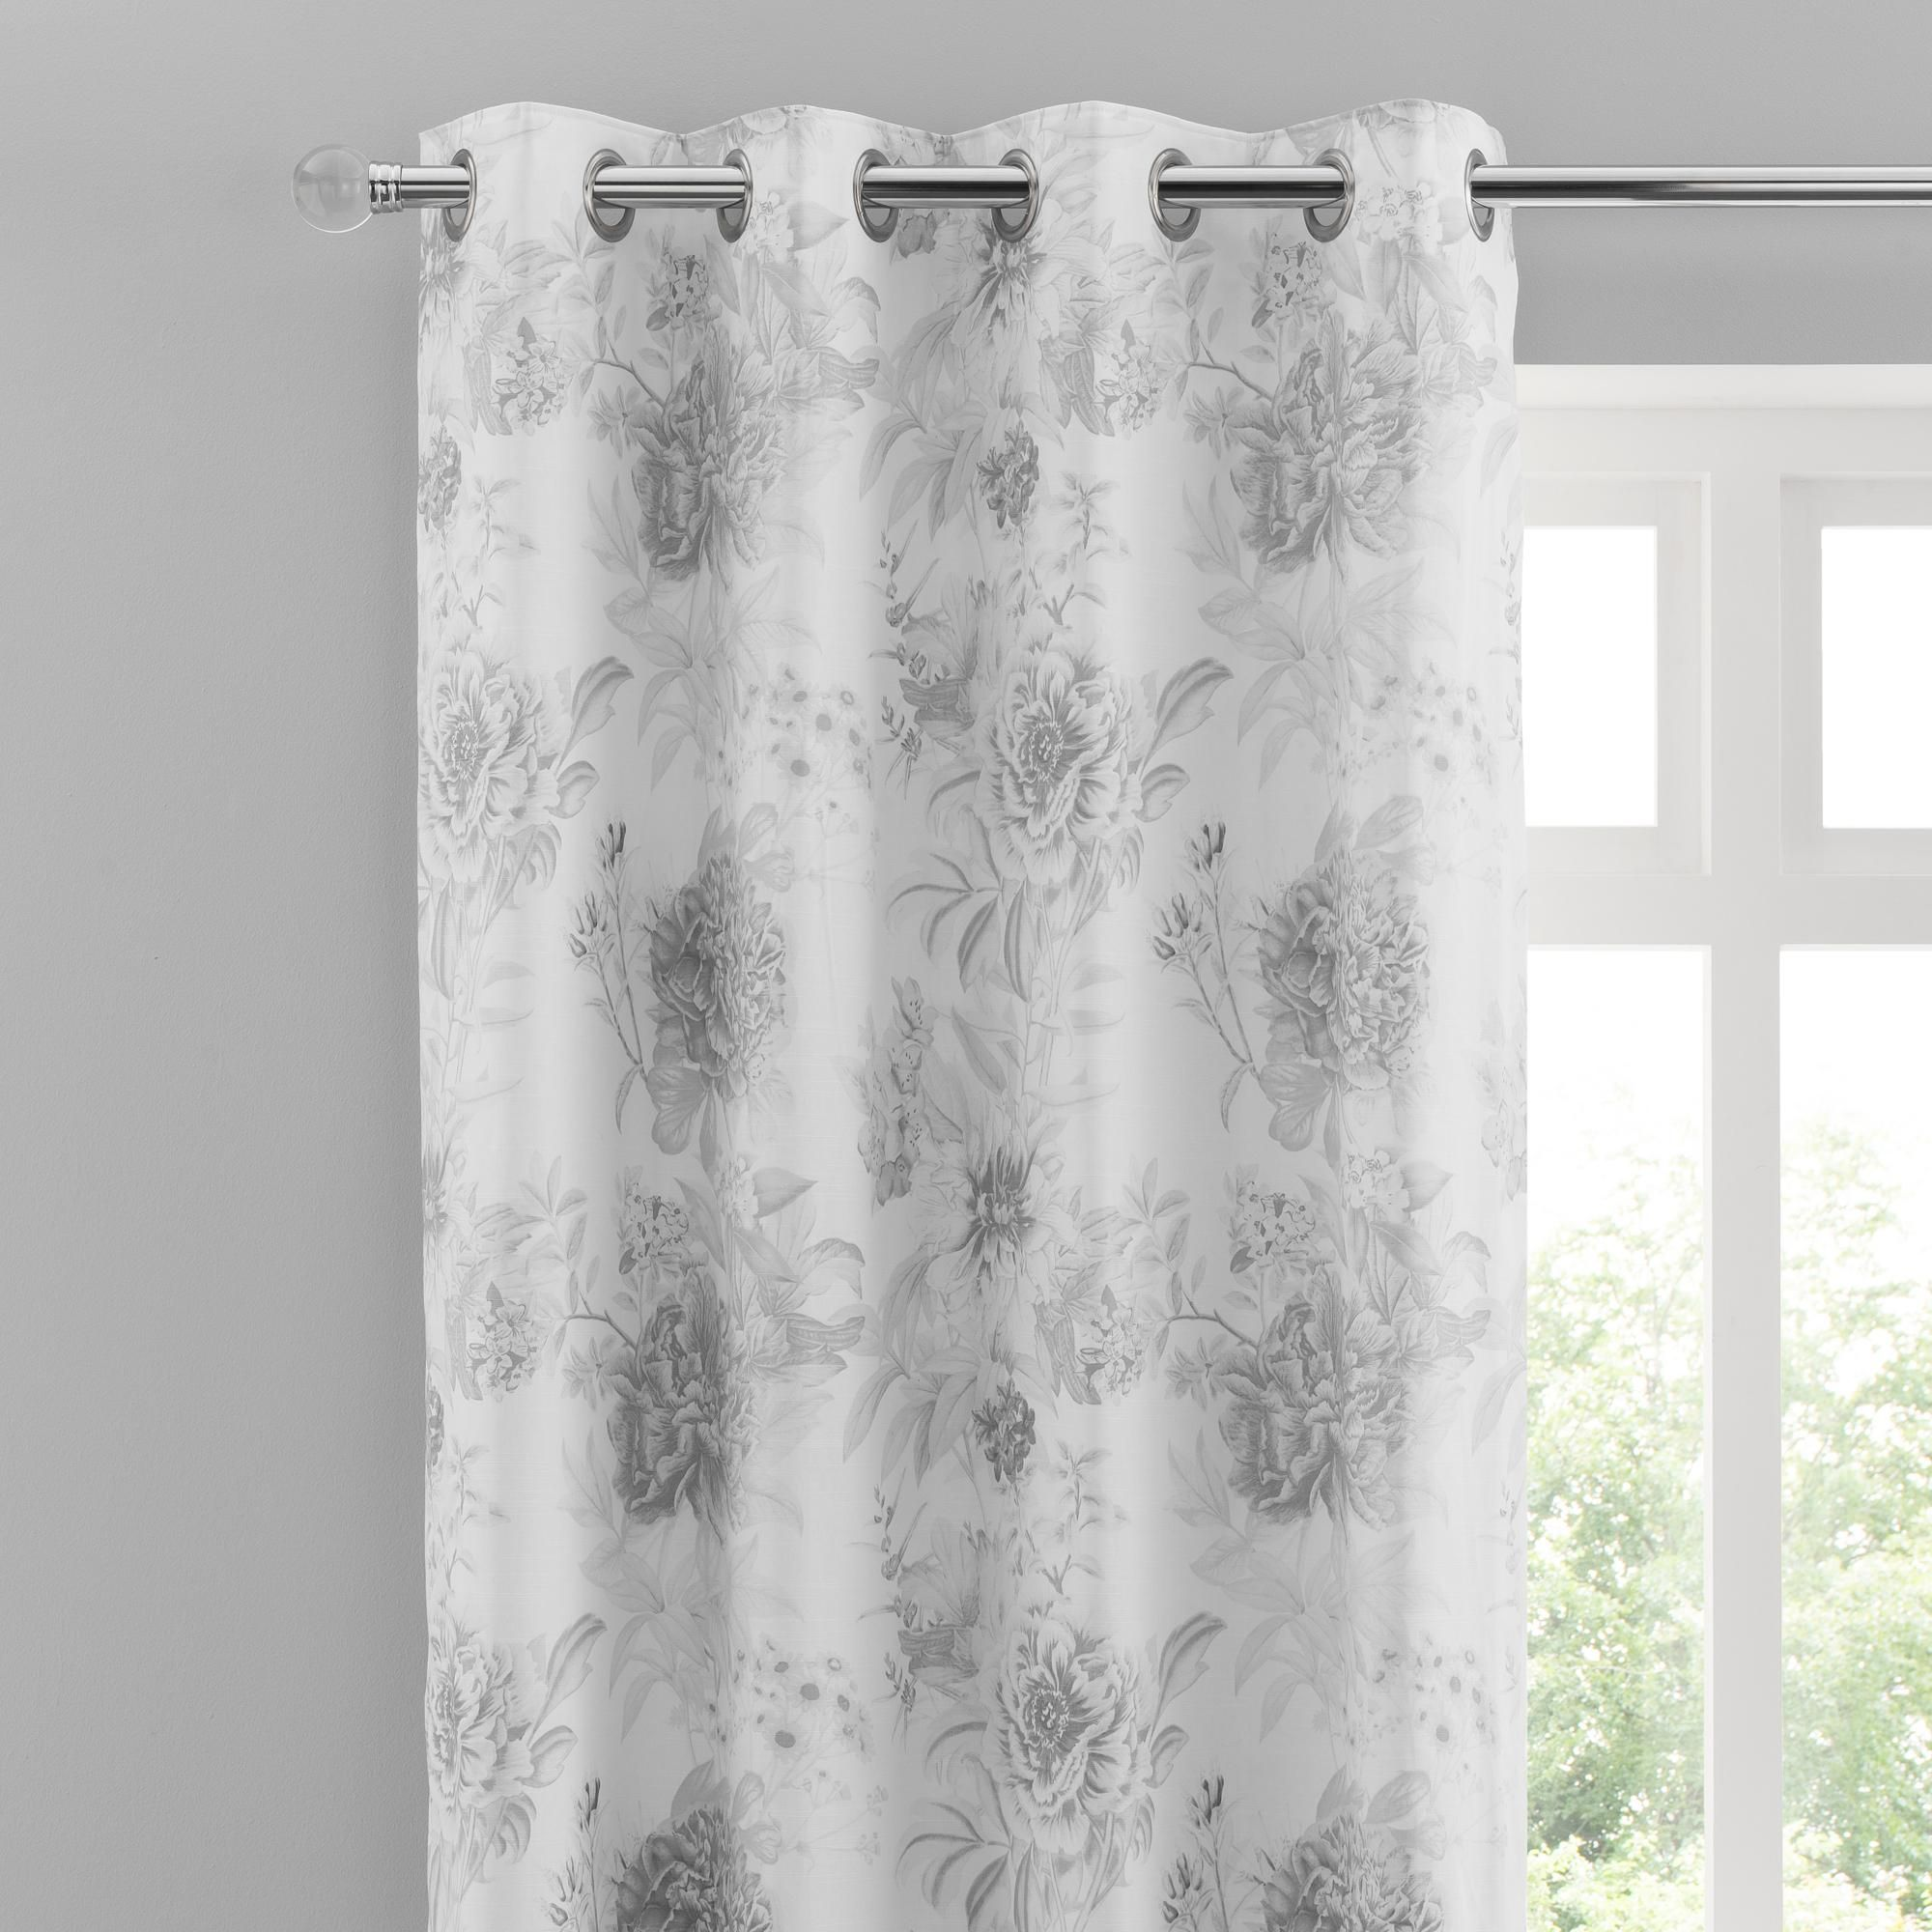 Dunelm Floral Fully Lined Cotton Grey 168x228cm Gracey Eyelet